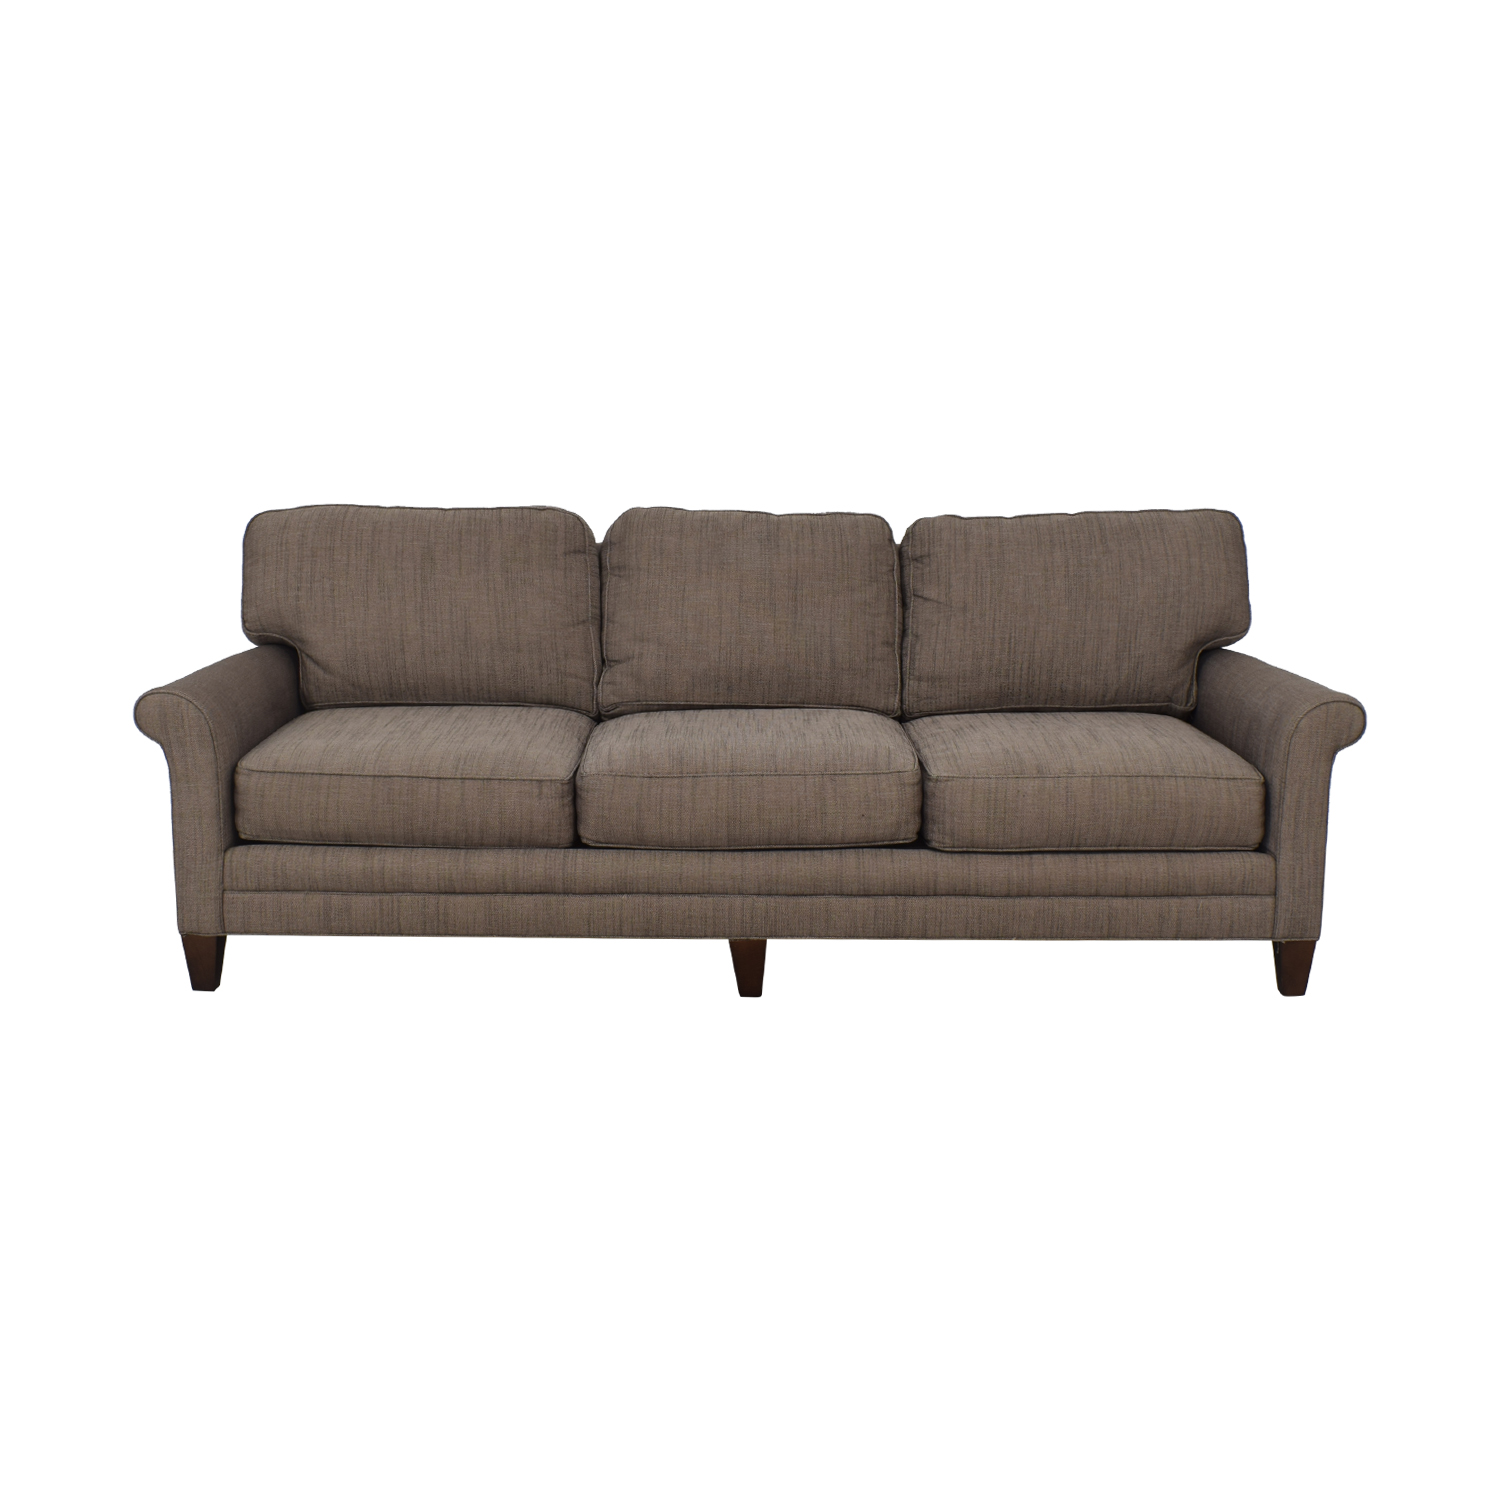 buy Lillian August Lillian August Three Cushion Sofa online